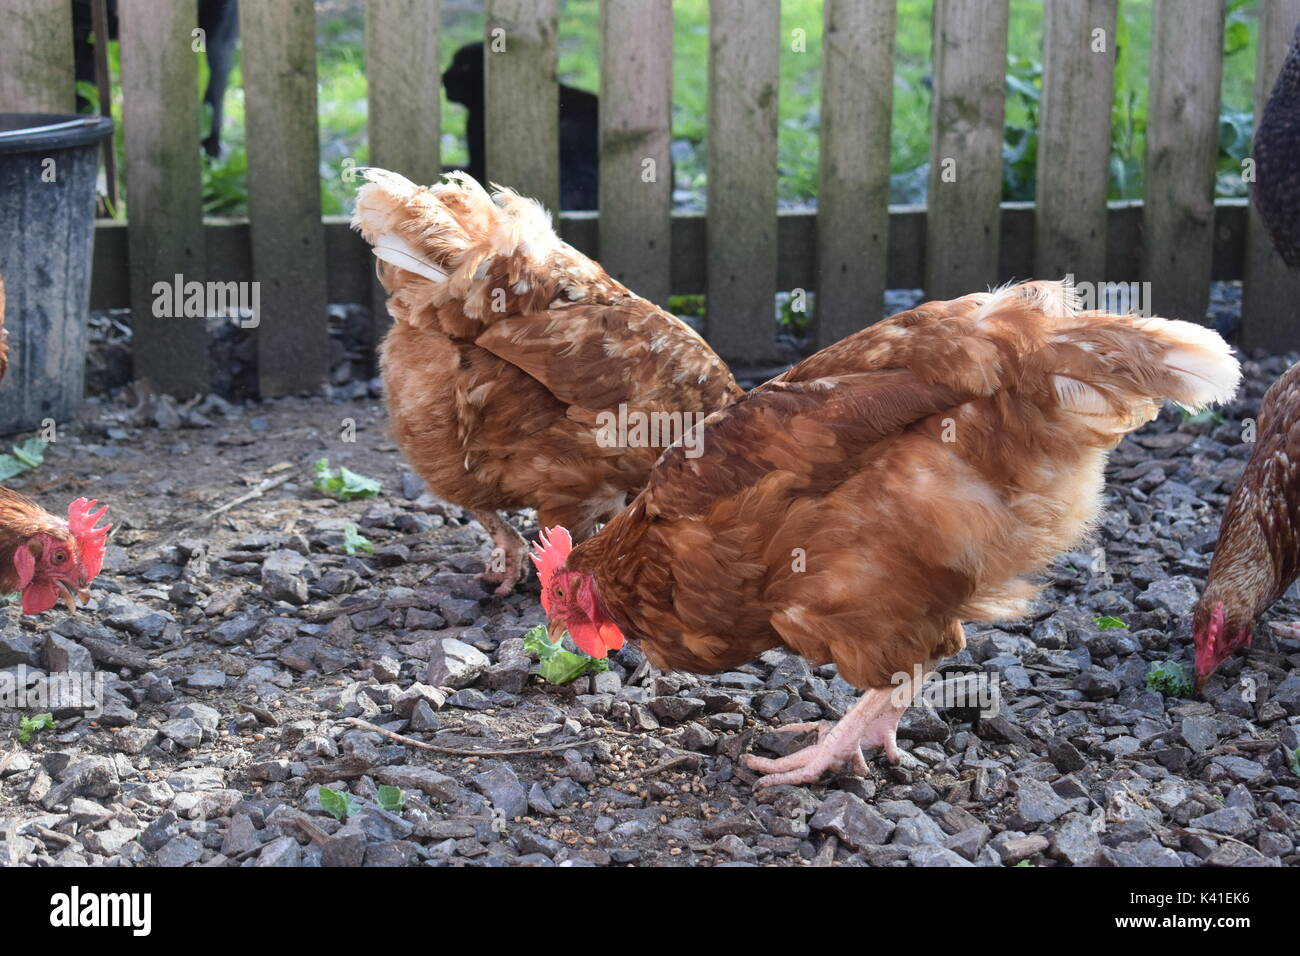 Brown hens enjoying greens - Stock Image